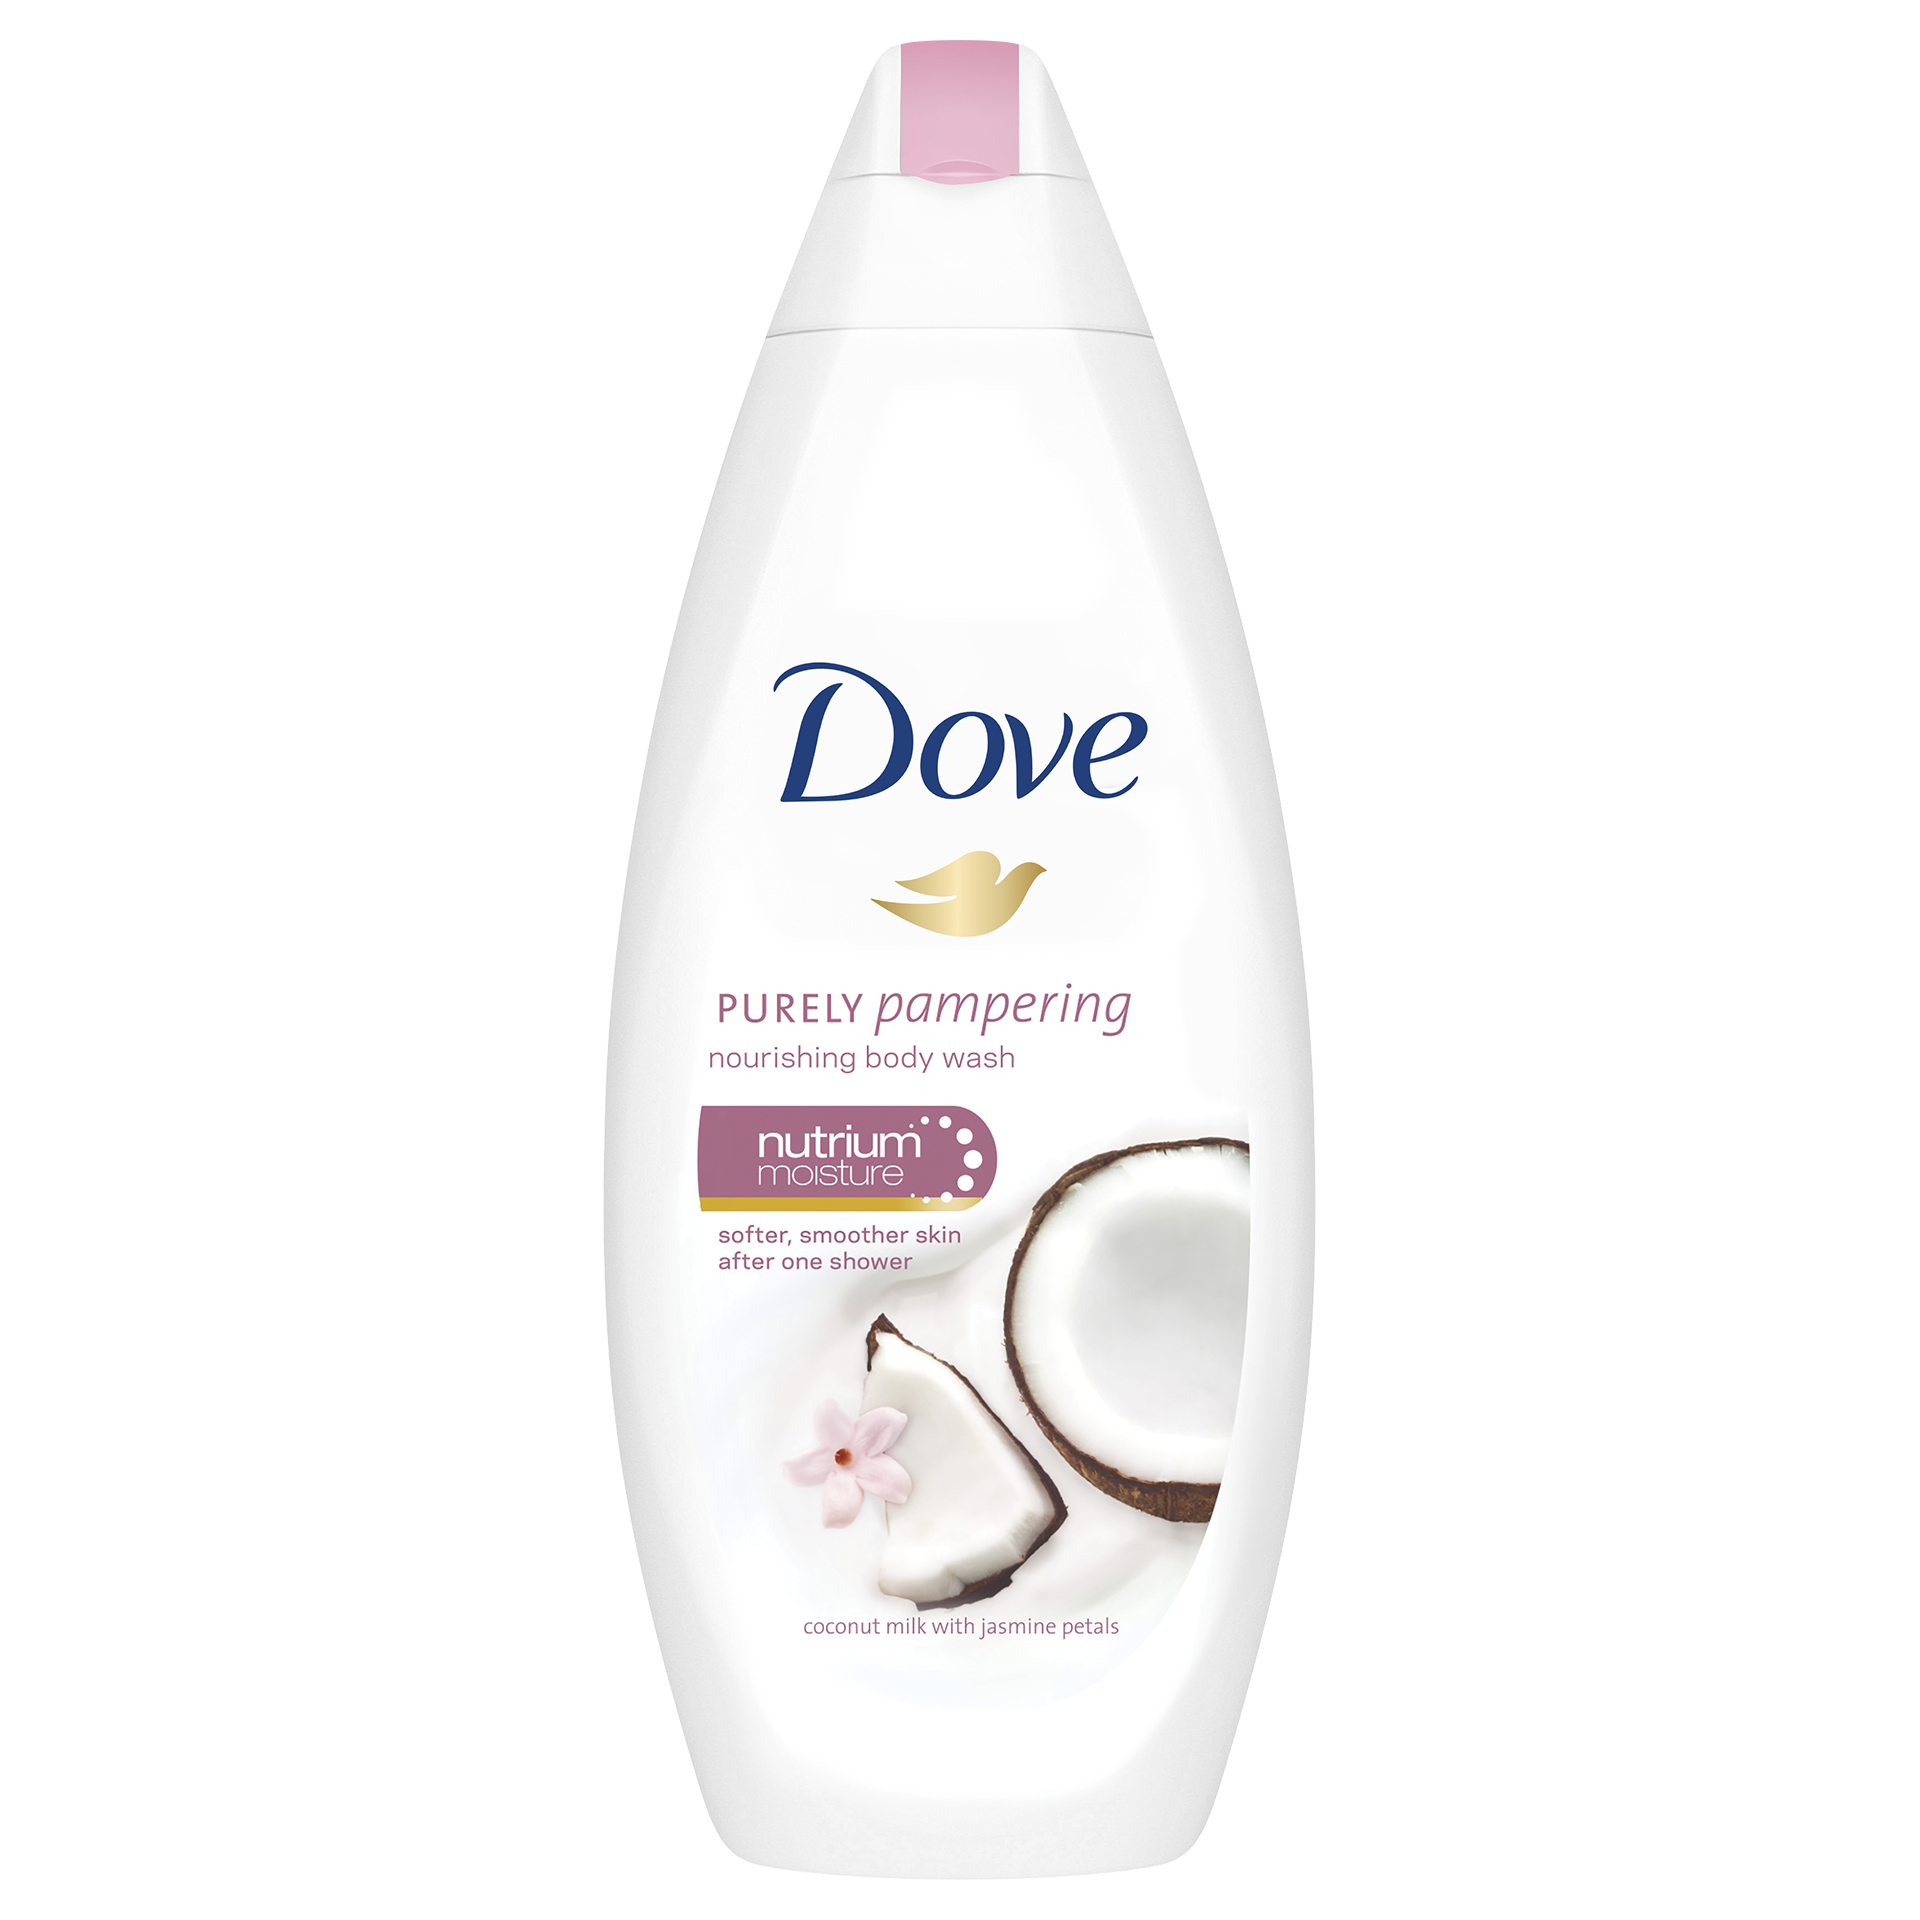 Dove Purely Pampering Coconut Milk With Jasmine Petals